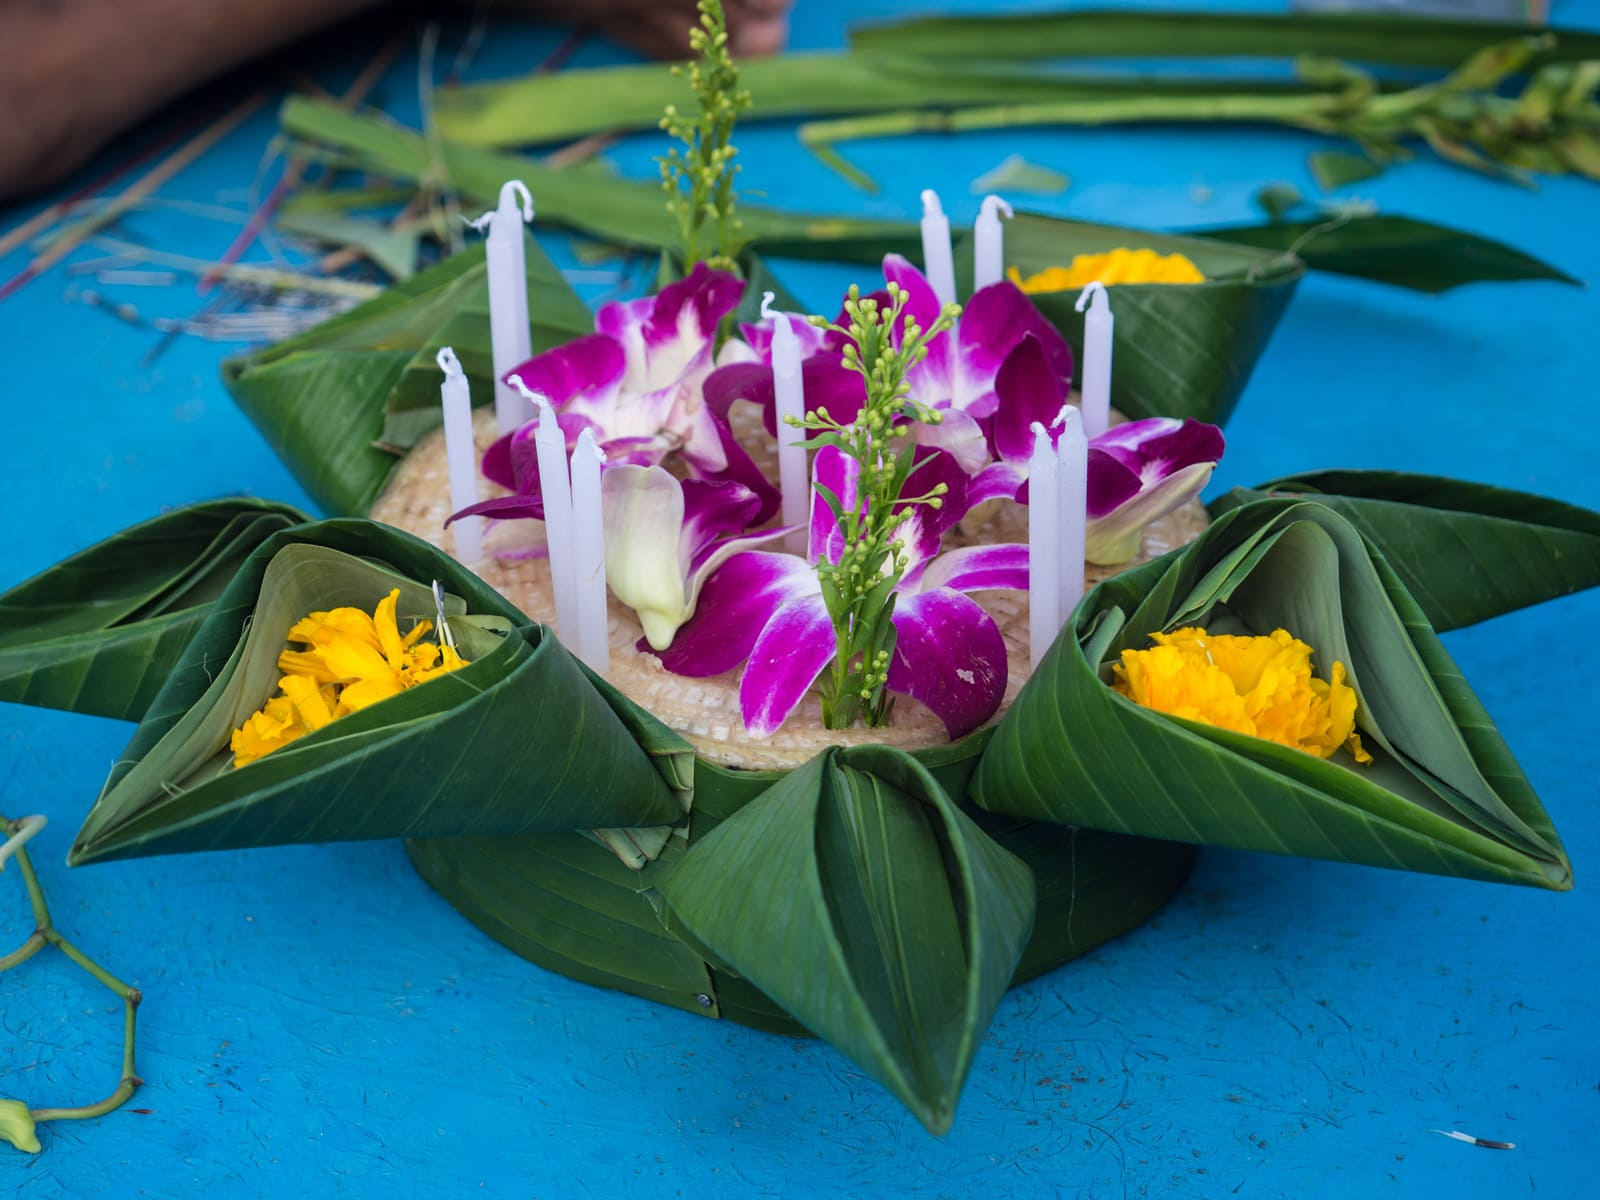 Offering made of leaves, flowers, and candles